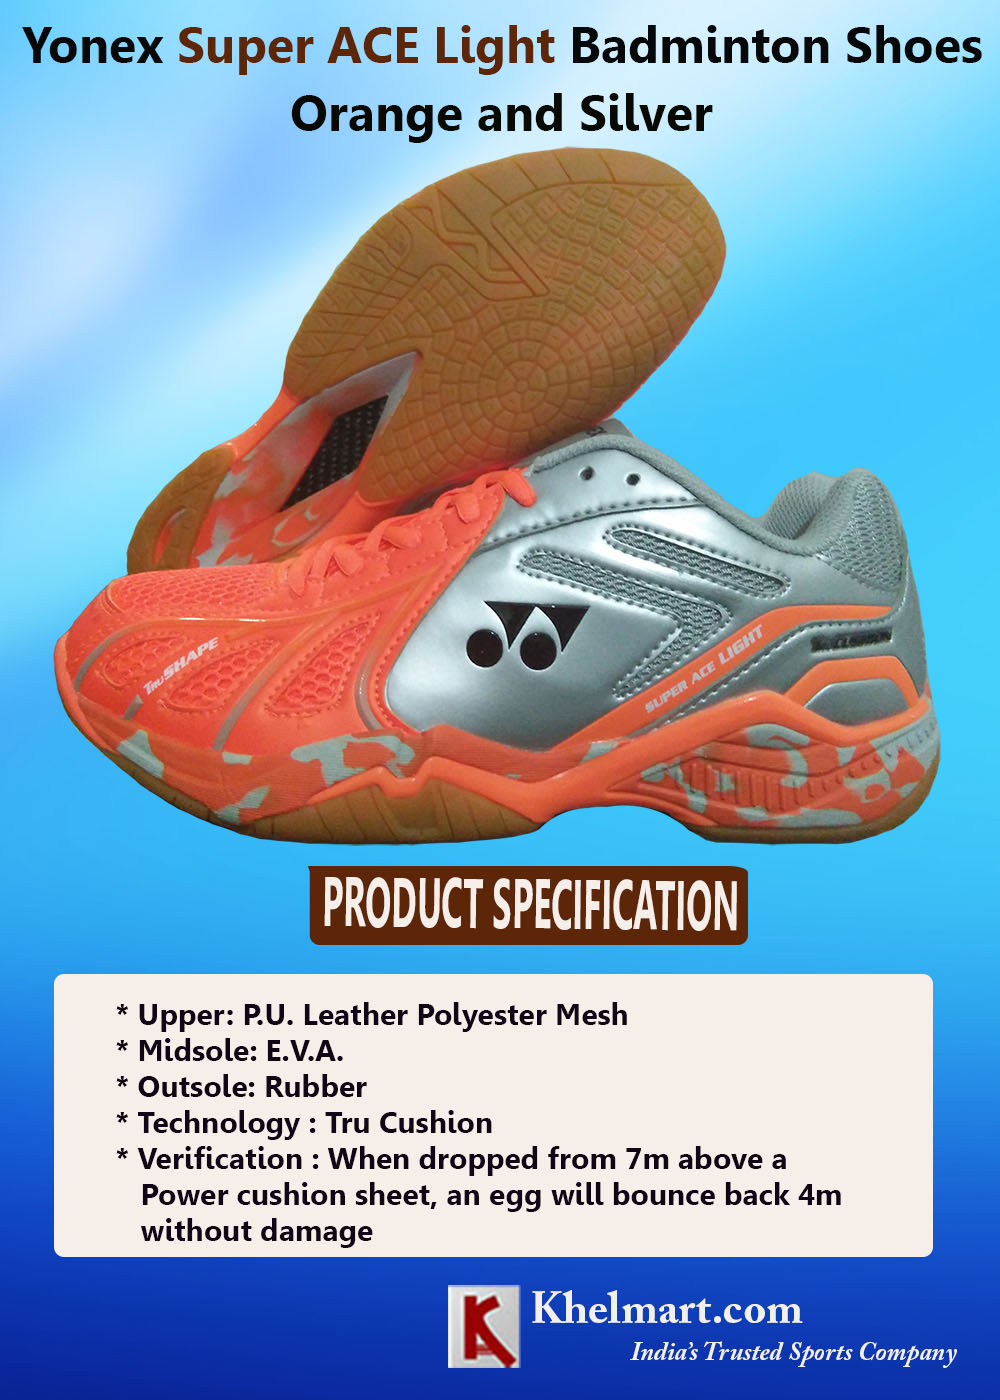 Yonex Super ACE Light Badminton Shoes Orange and Silver